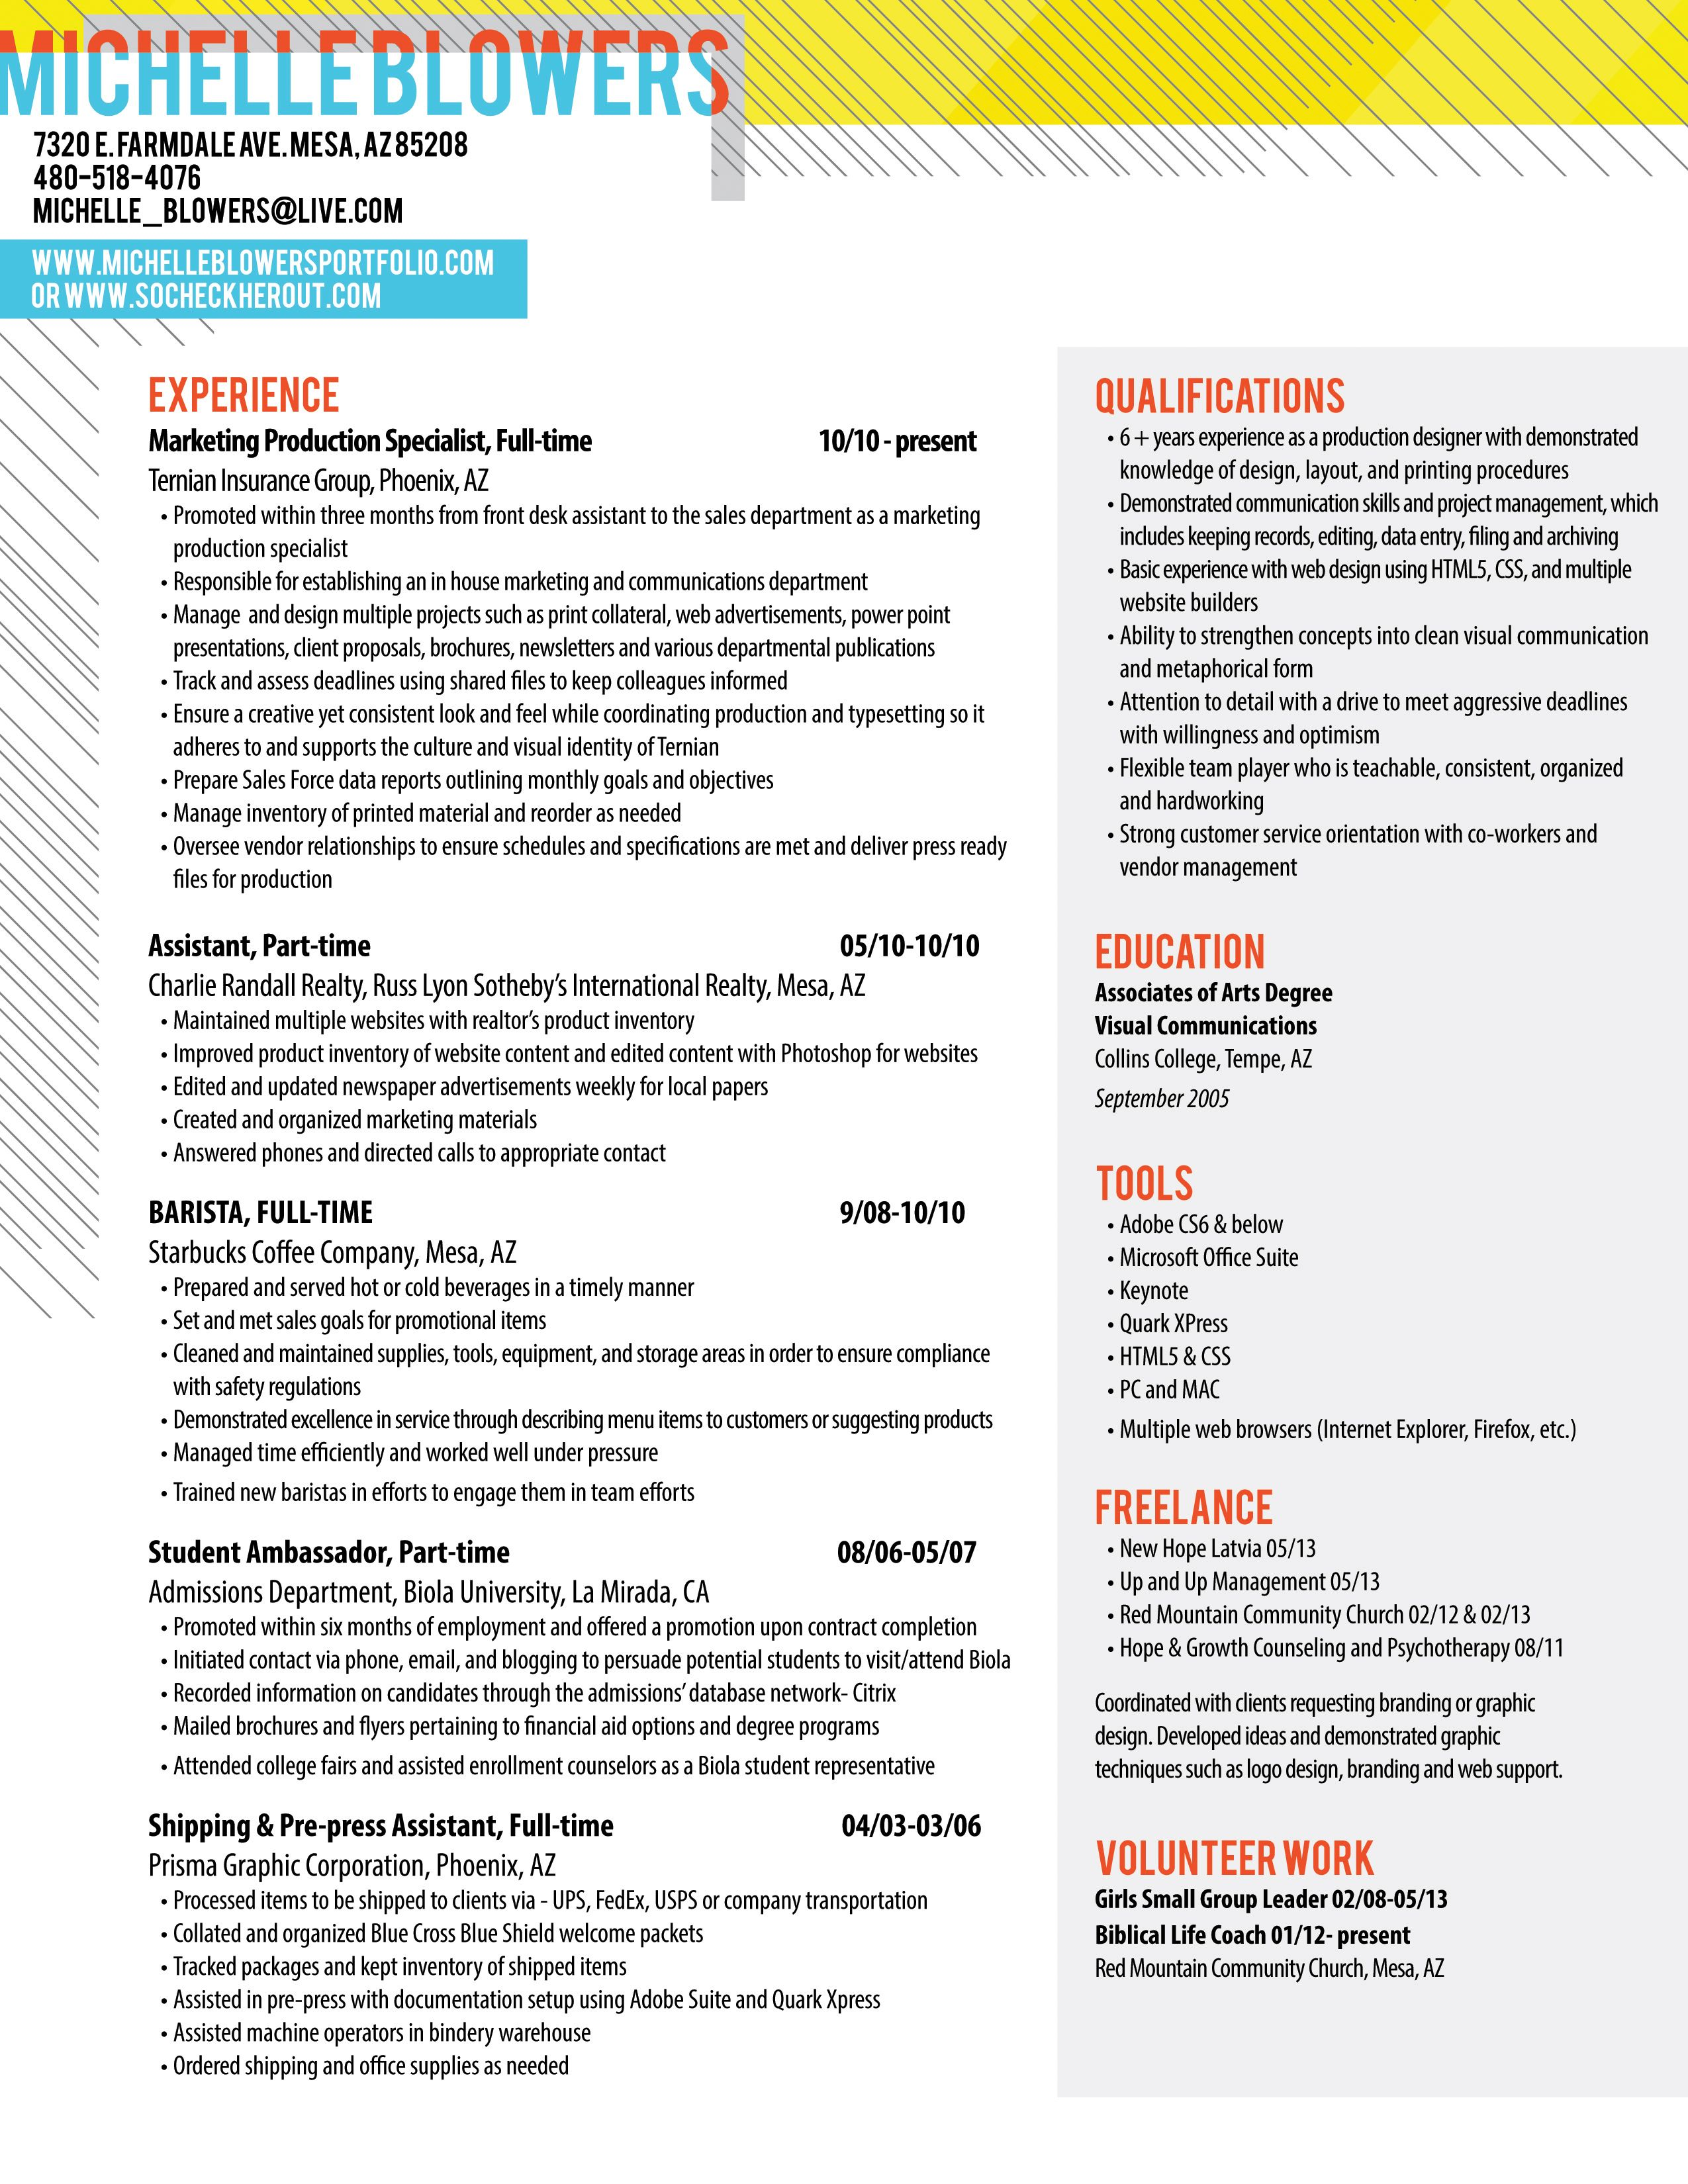 Resumes That Say Hire Me Job Info Cover Letter Tips Cover Letter For Resume